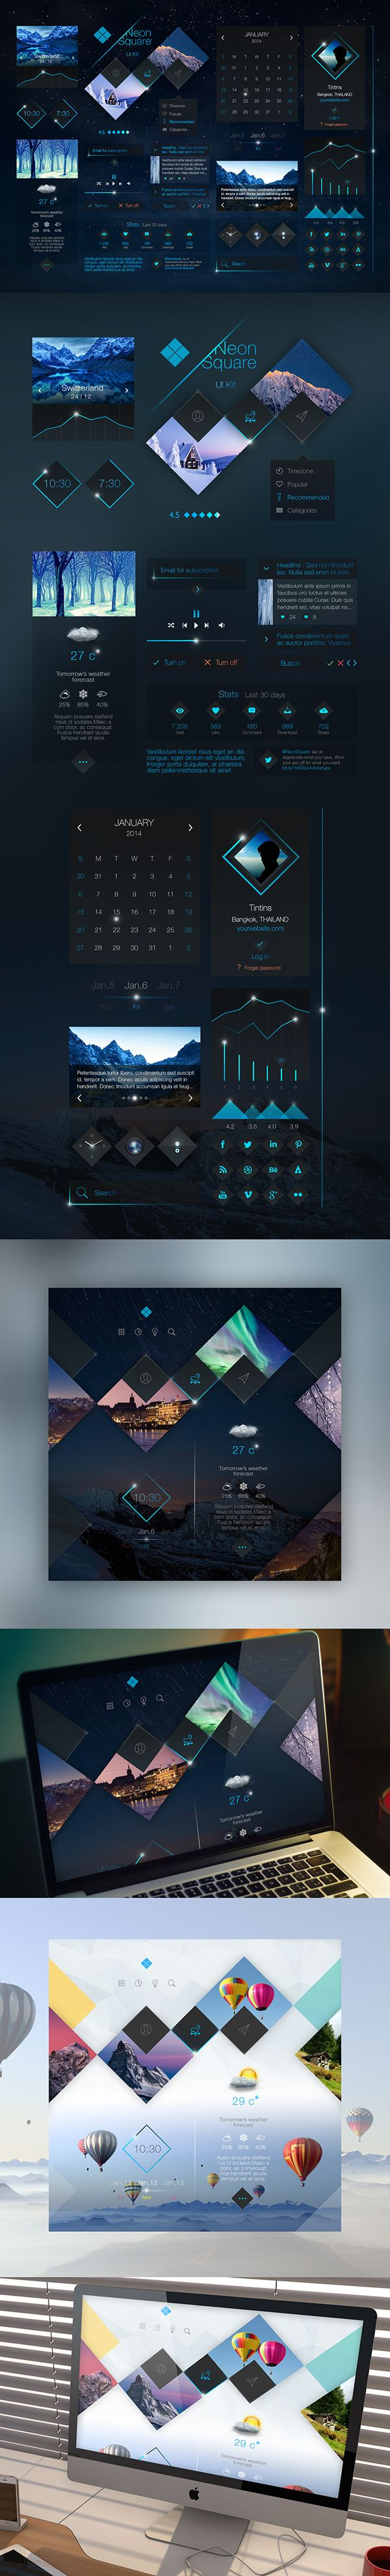 Neon Square UI Kit on Behance